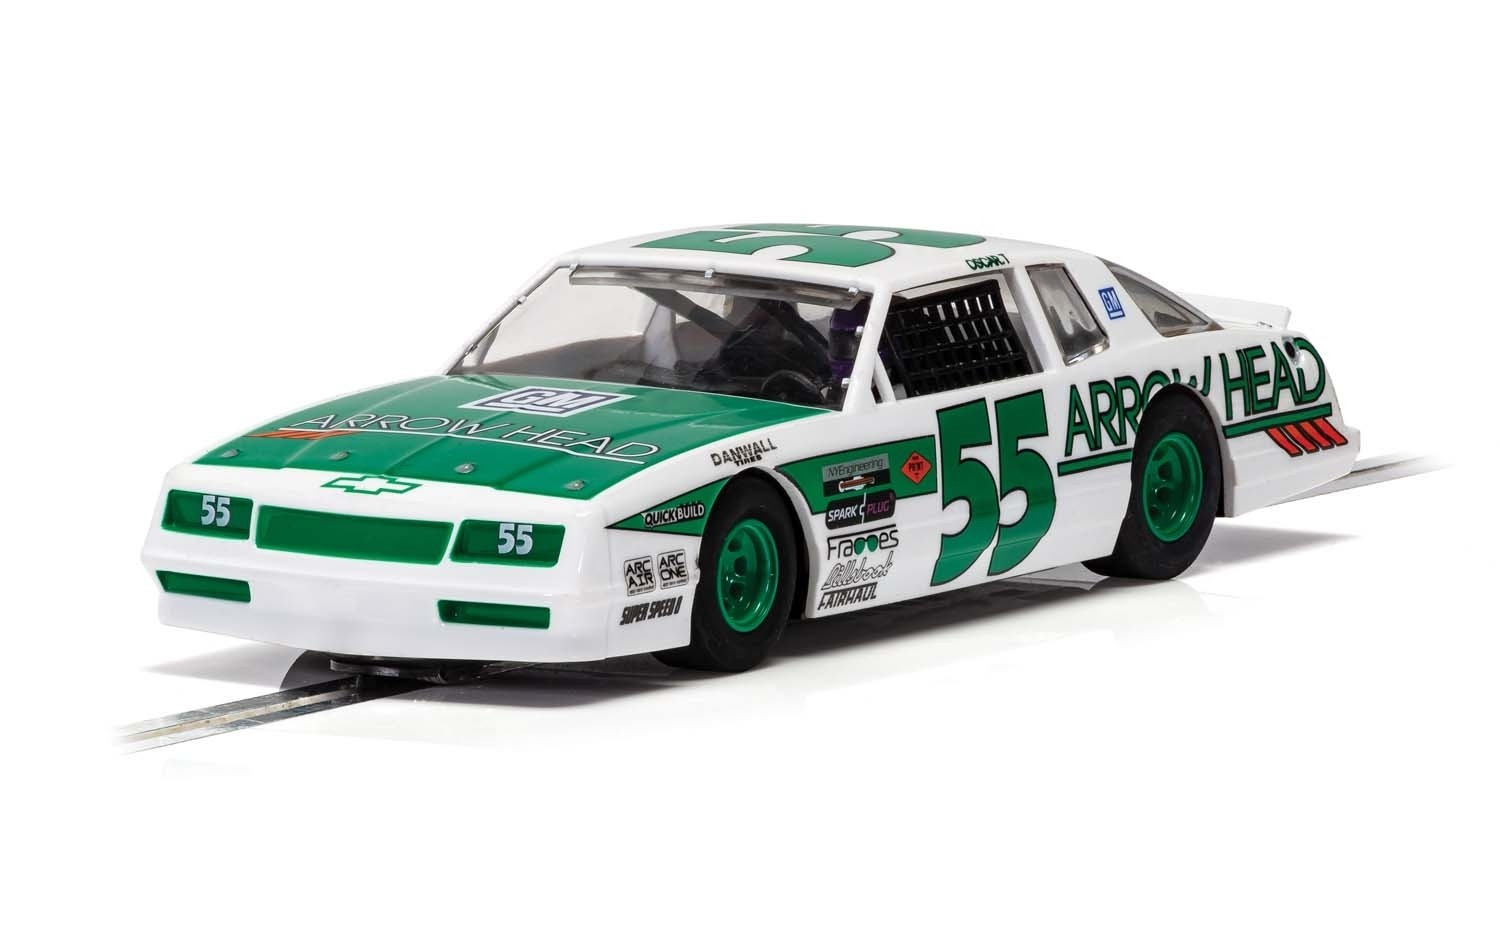 C4079 Scalextric Chevrolet Monte Carlo, Green & White, No.55